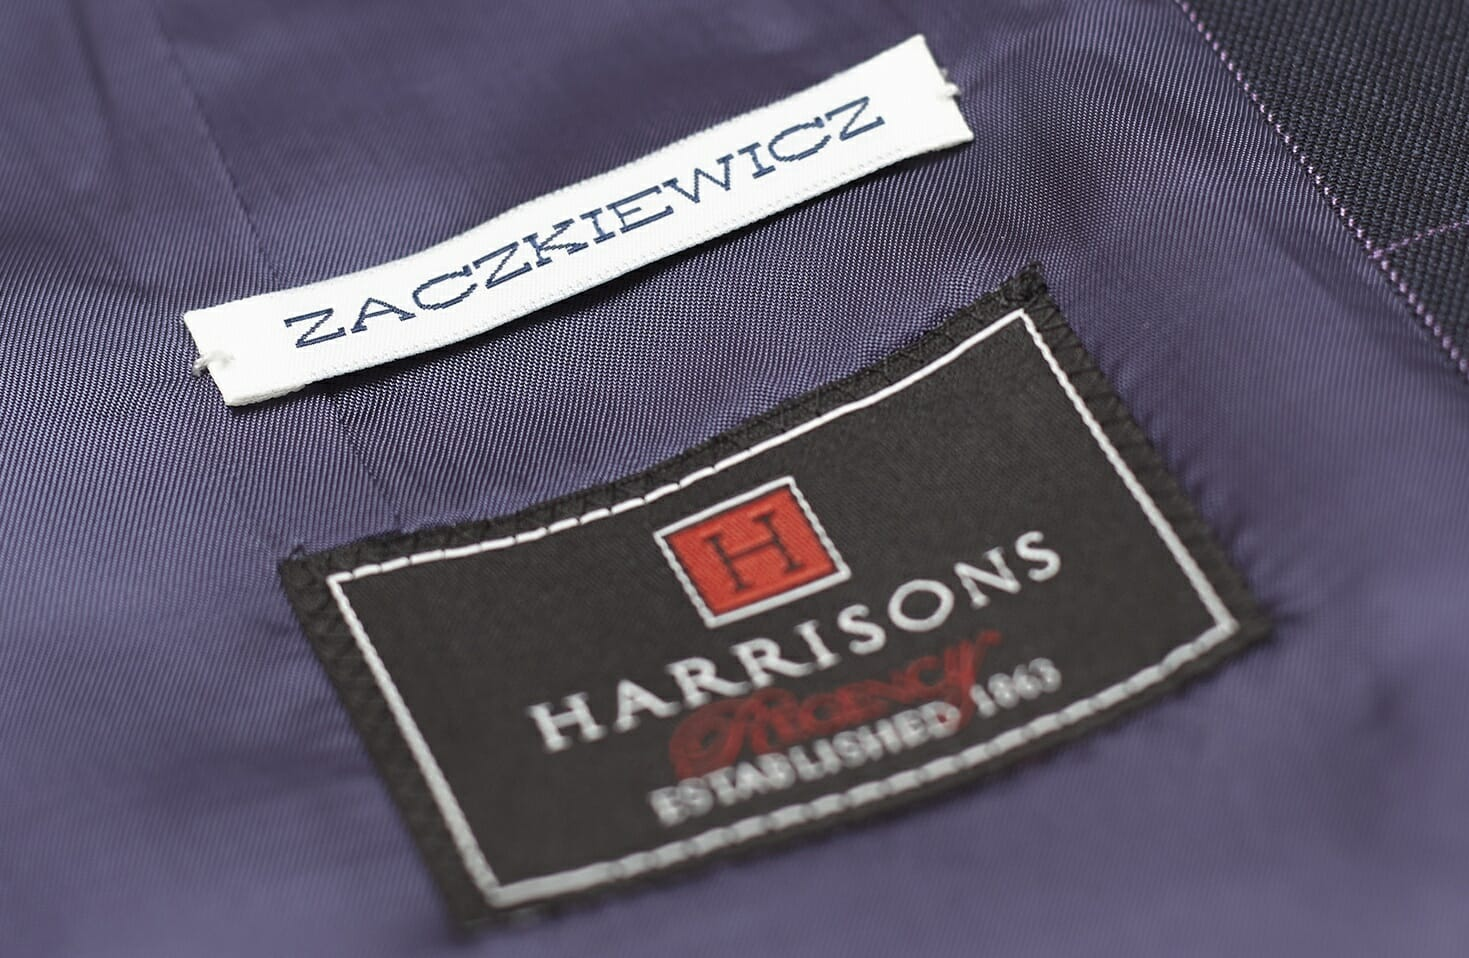 harrisons-of-edinburgh-fabric-supplier